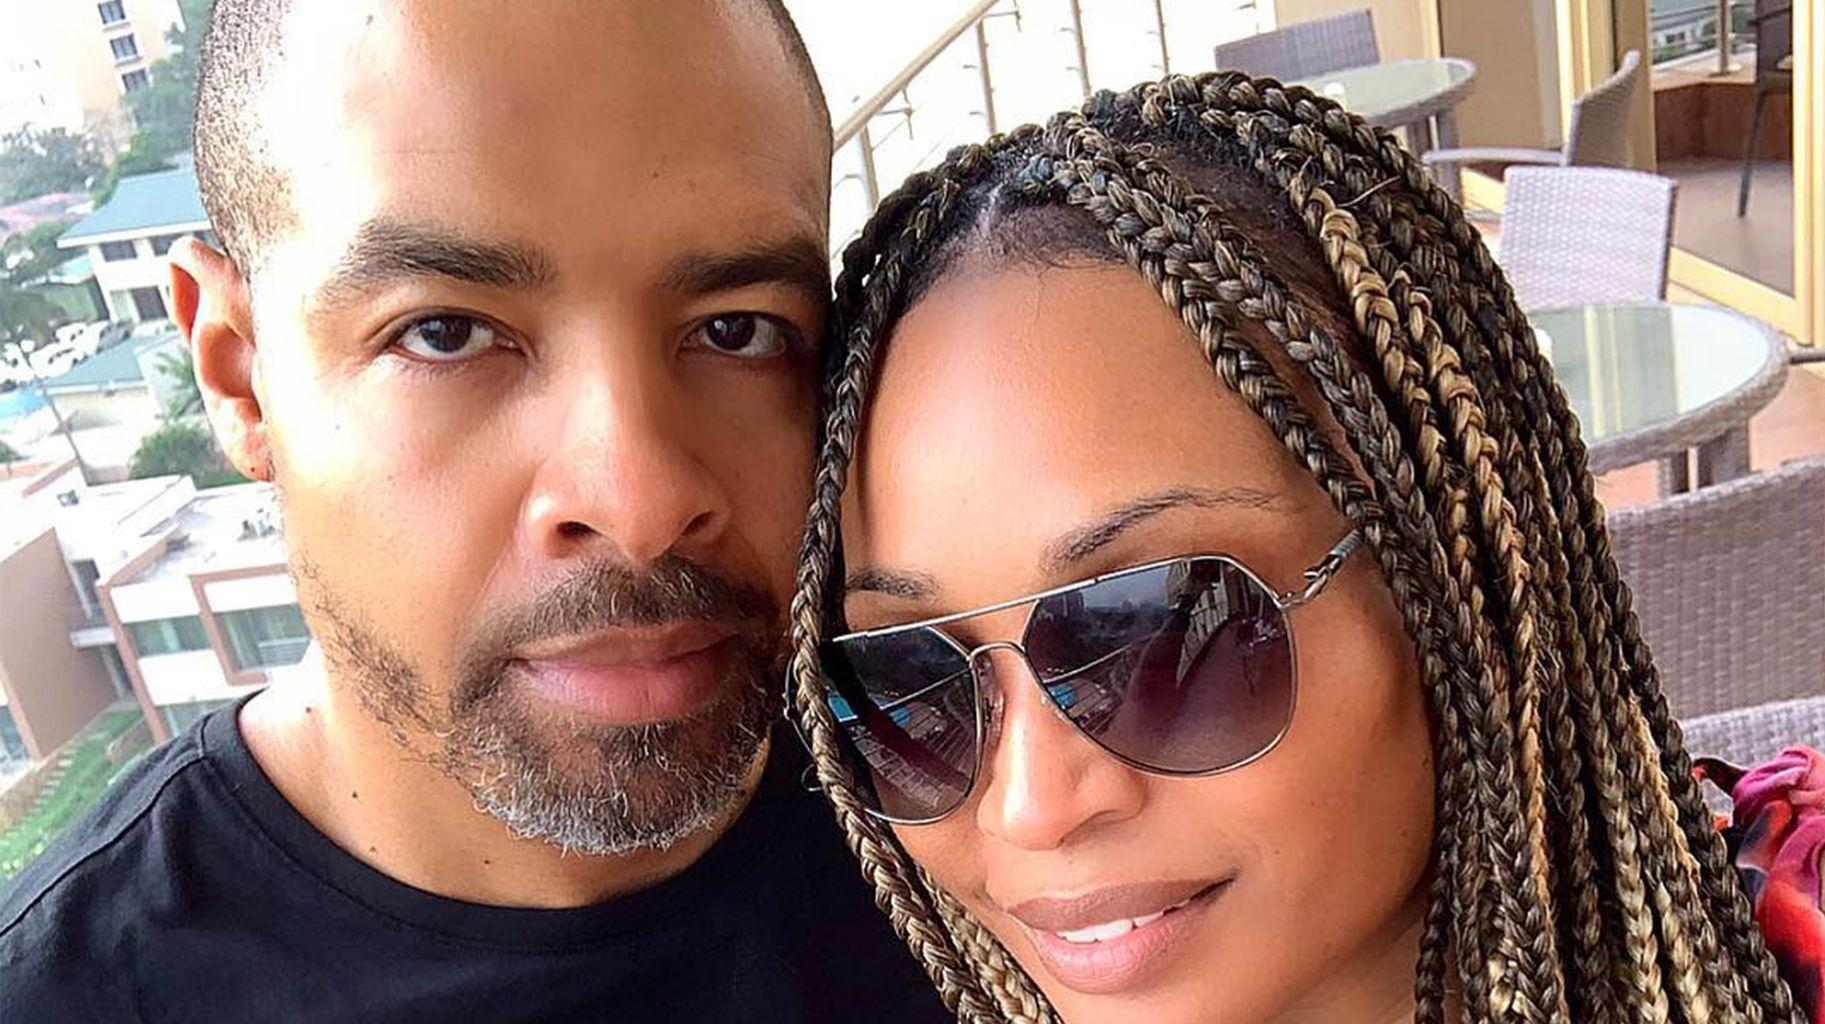 Cynthia Bailey And Eva Marcille Look Amazing With Their Husbands On Vacay - Check Out The Couples Together